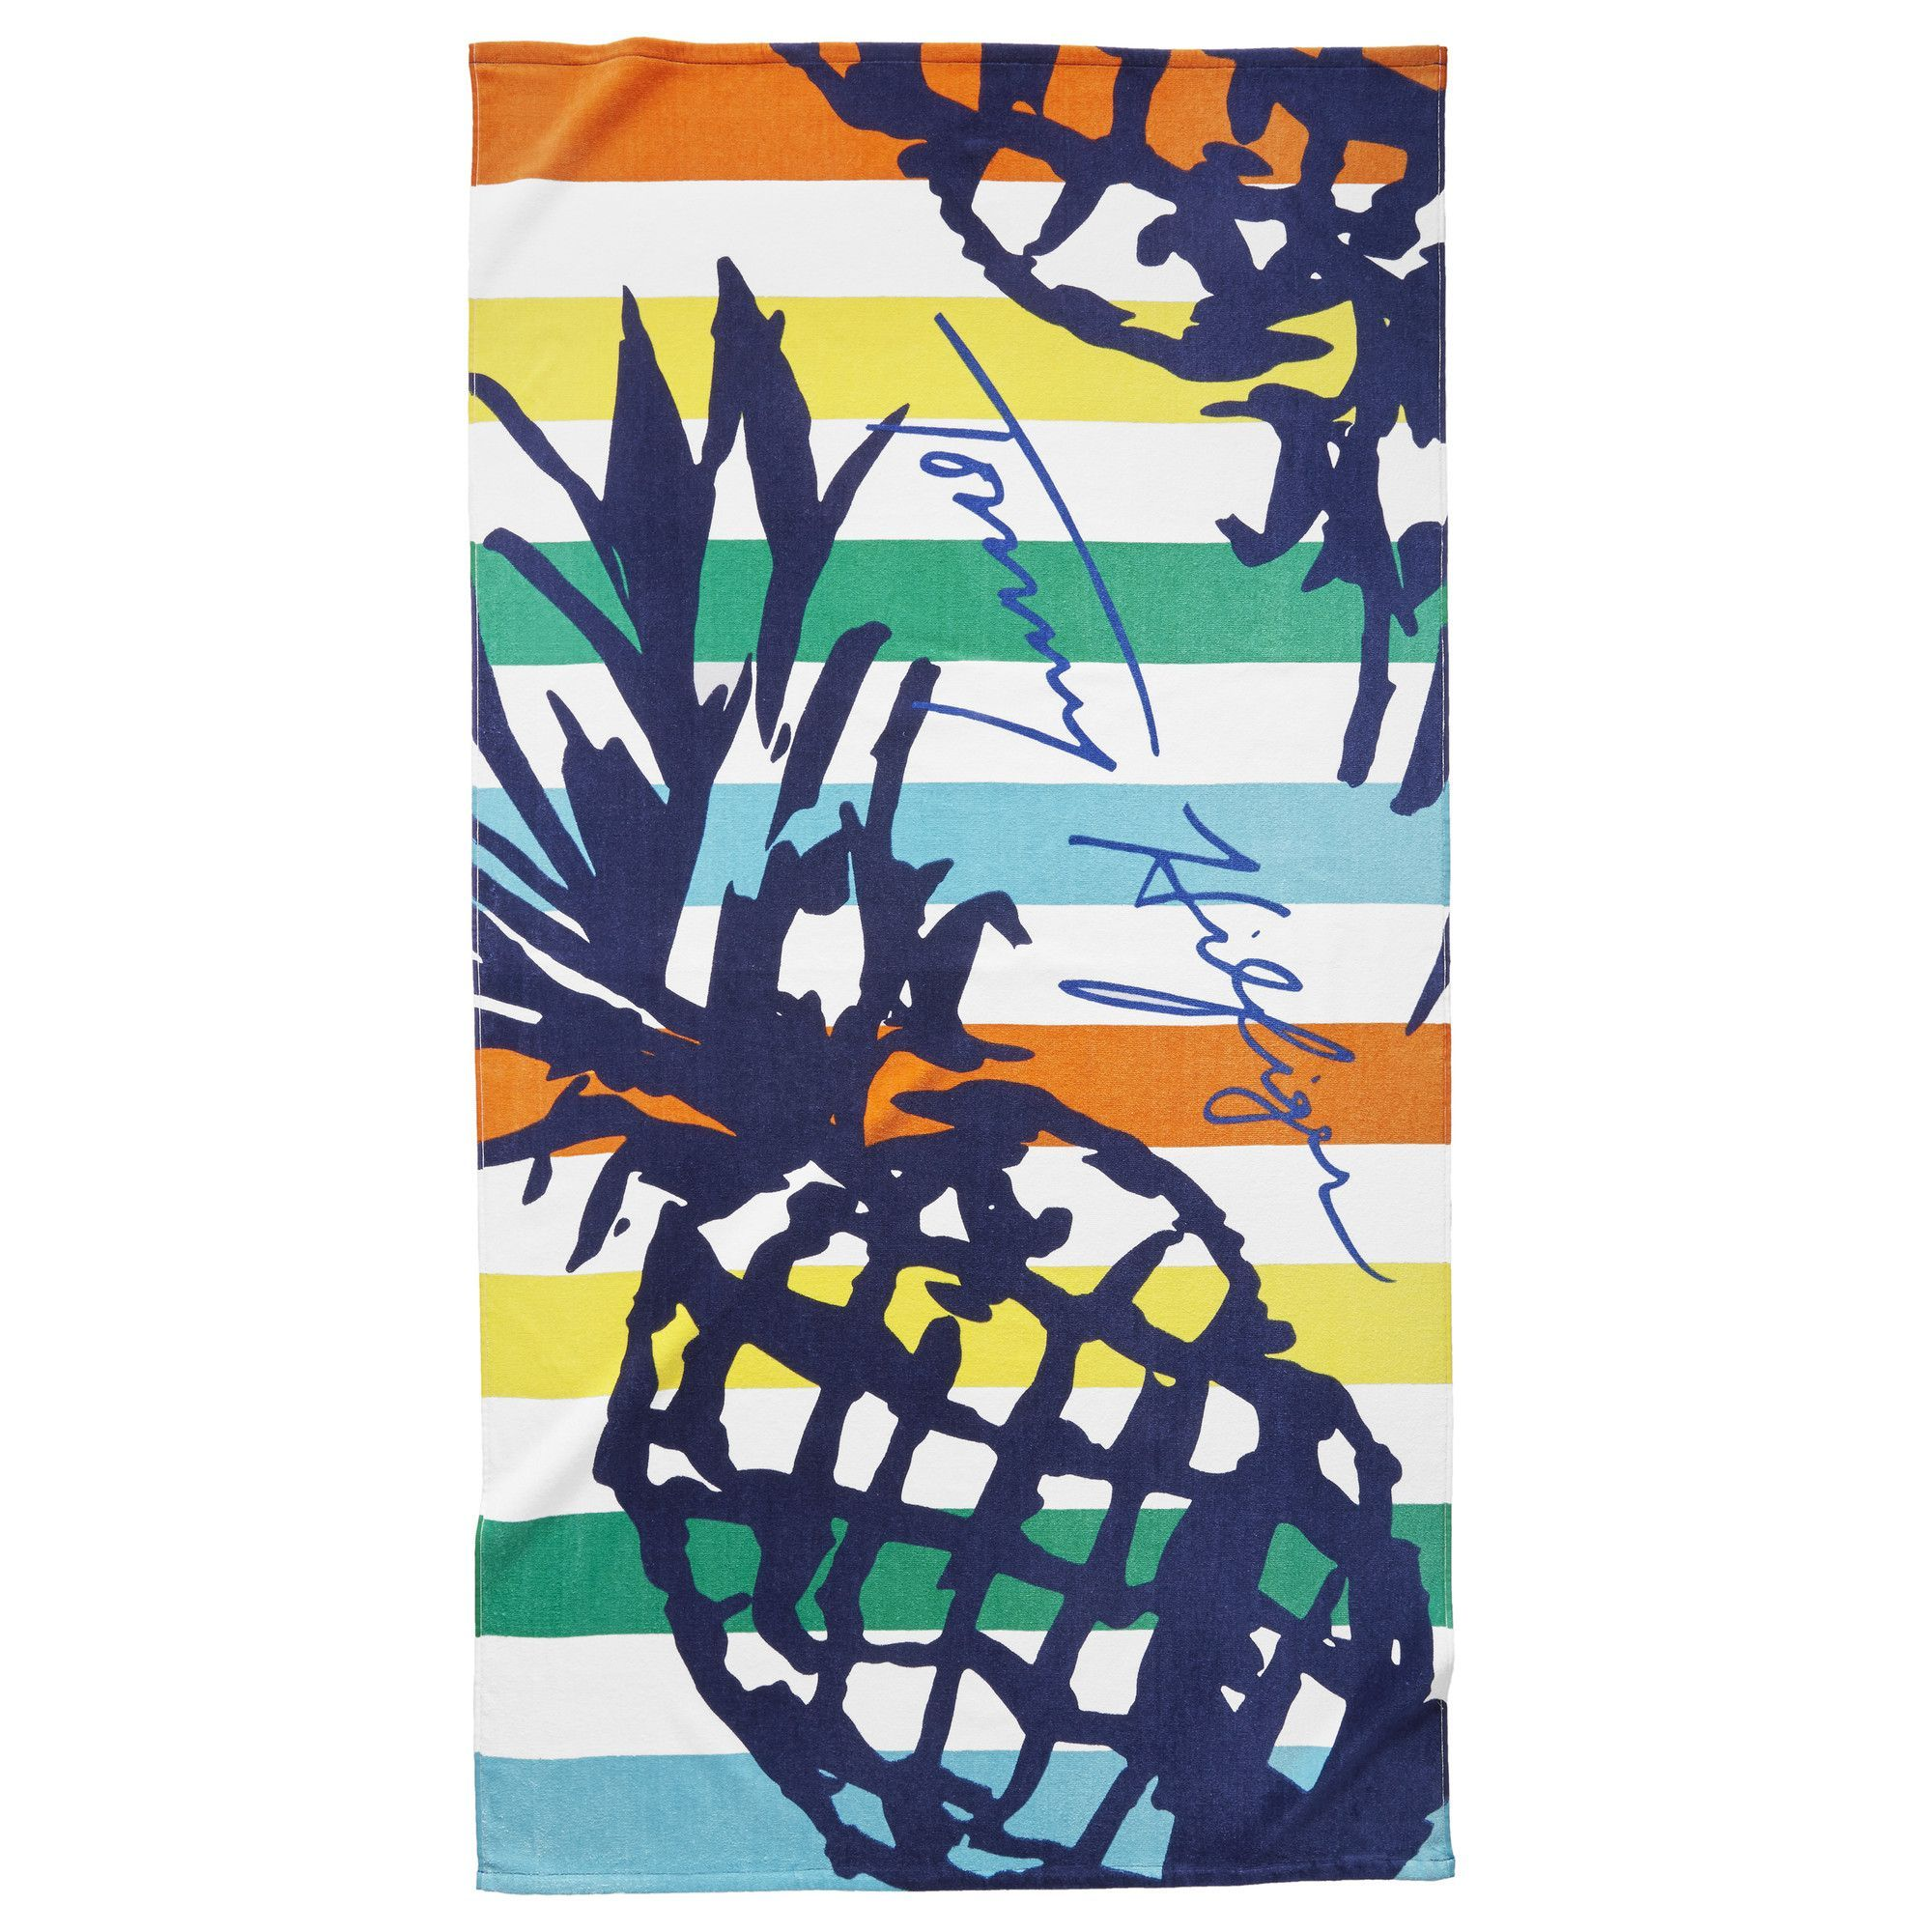 tommy hilfiger striped pineapple beach towel - Beach Towels On Sale